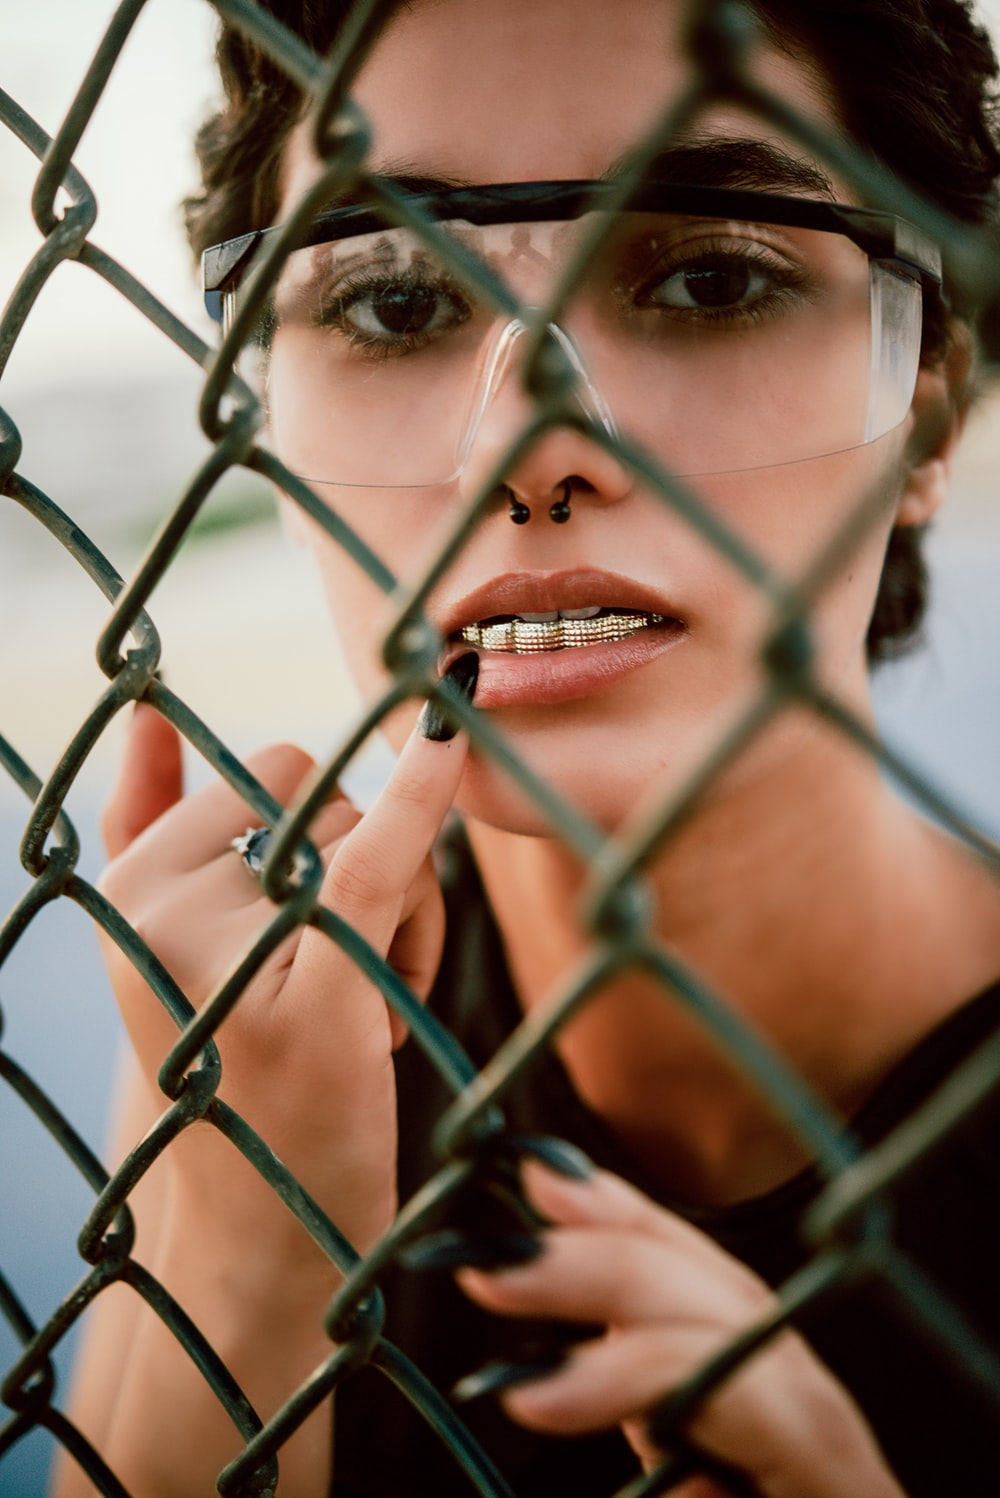 woman in red lipstick behind gray metal fence